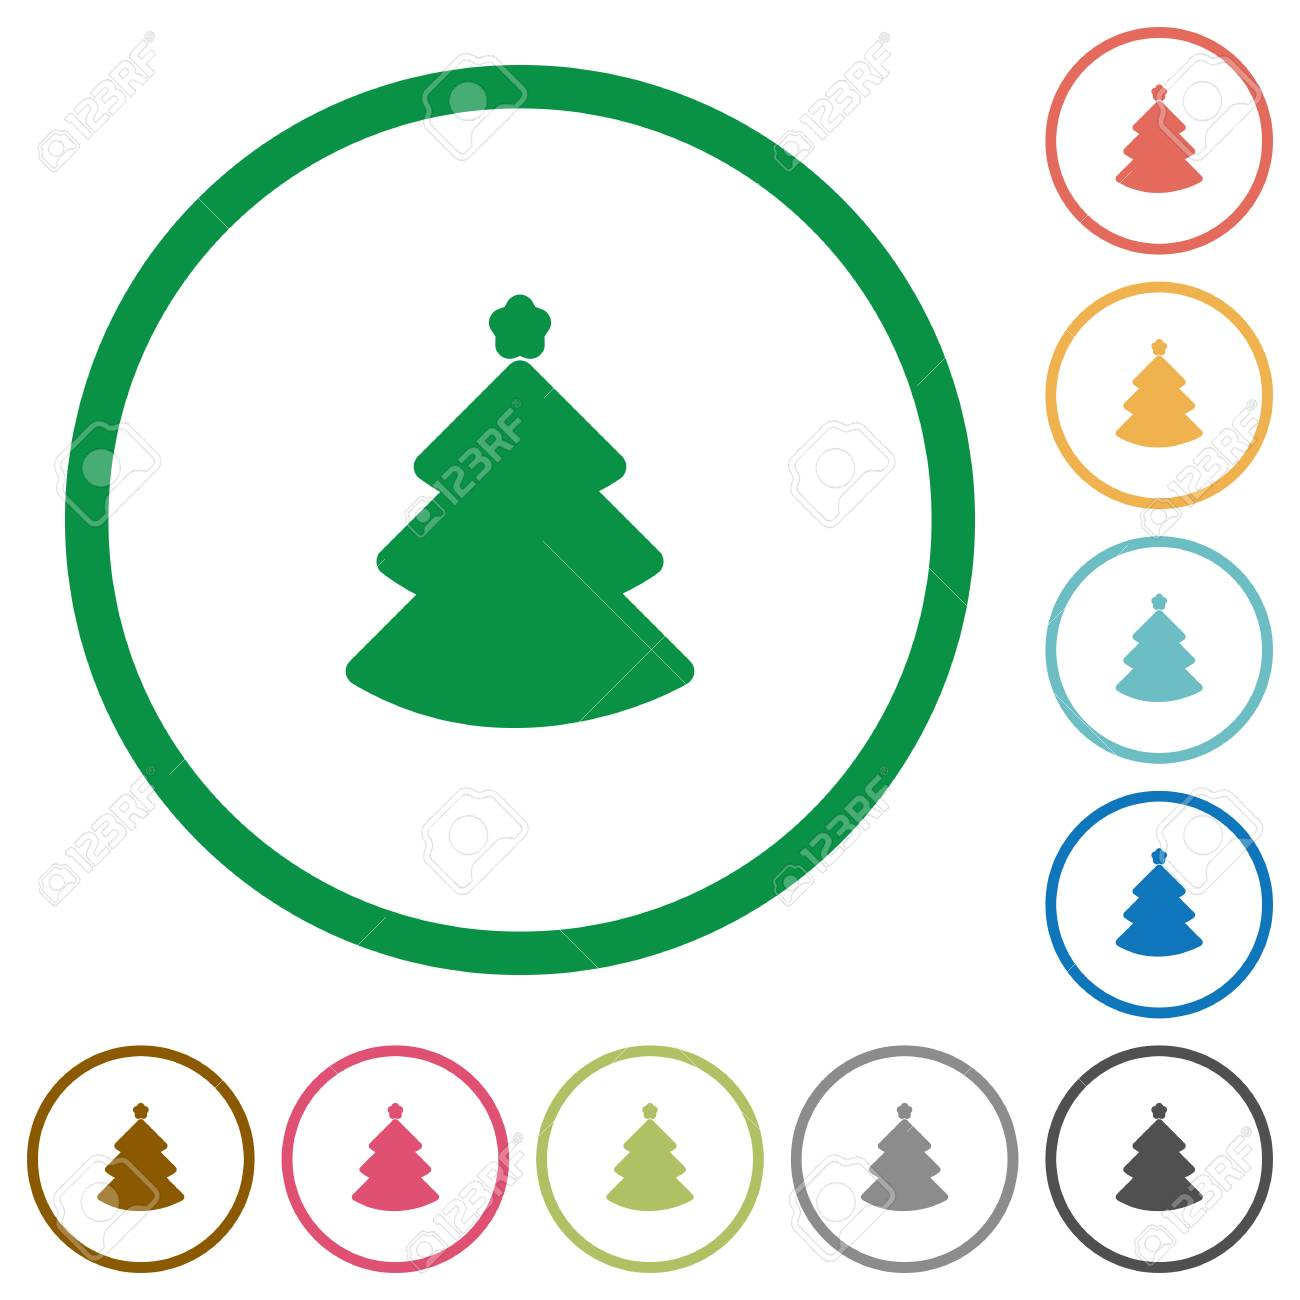 Christmas Tree Flat Color Icons In Round Outlines Royalty Free ...